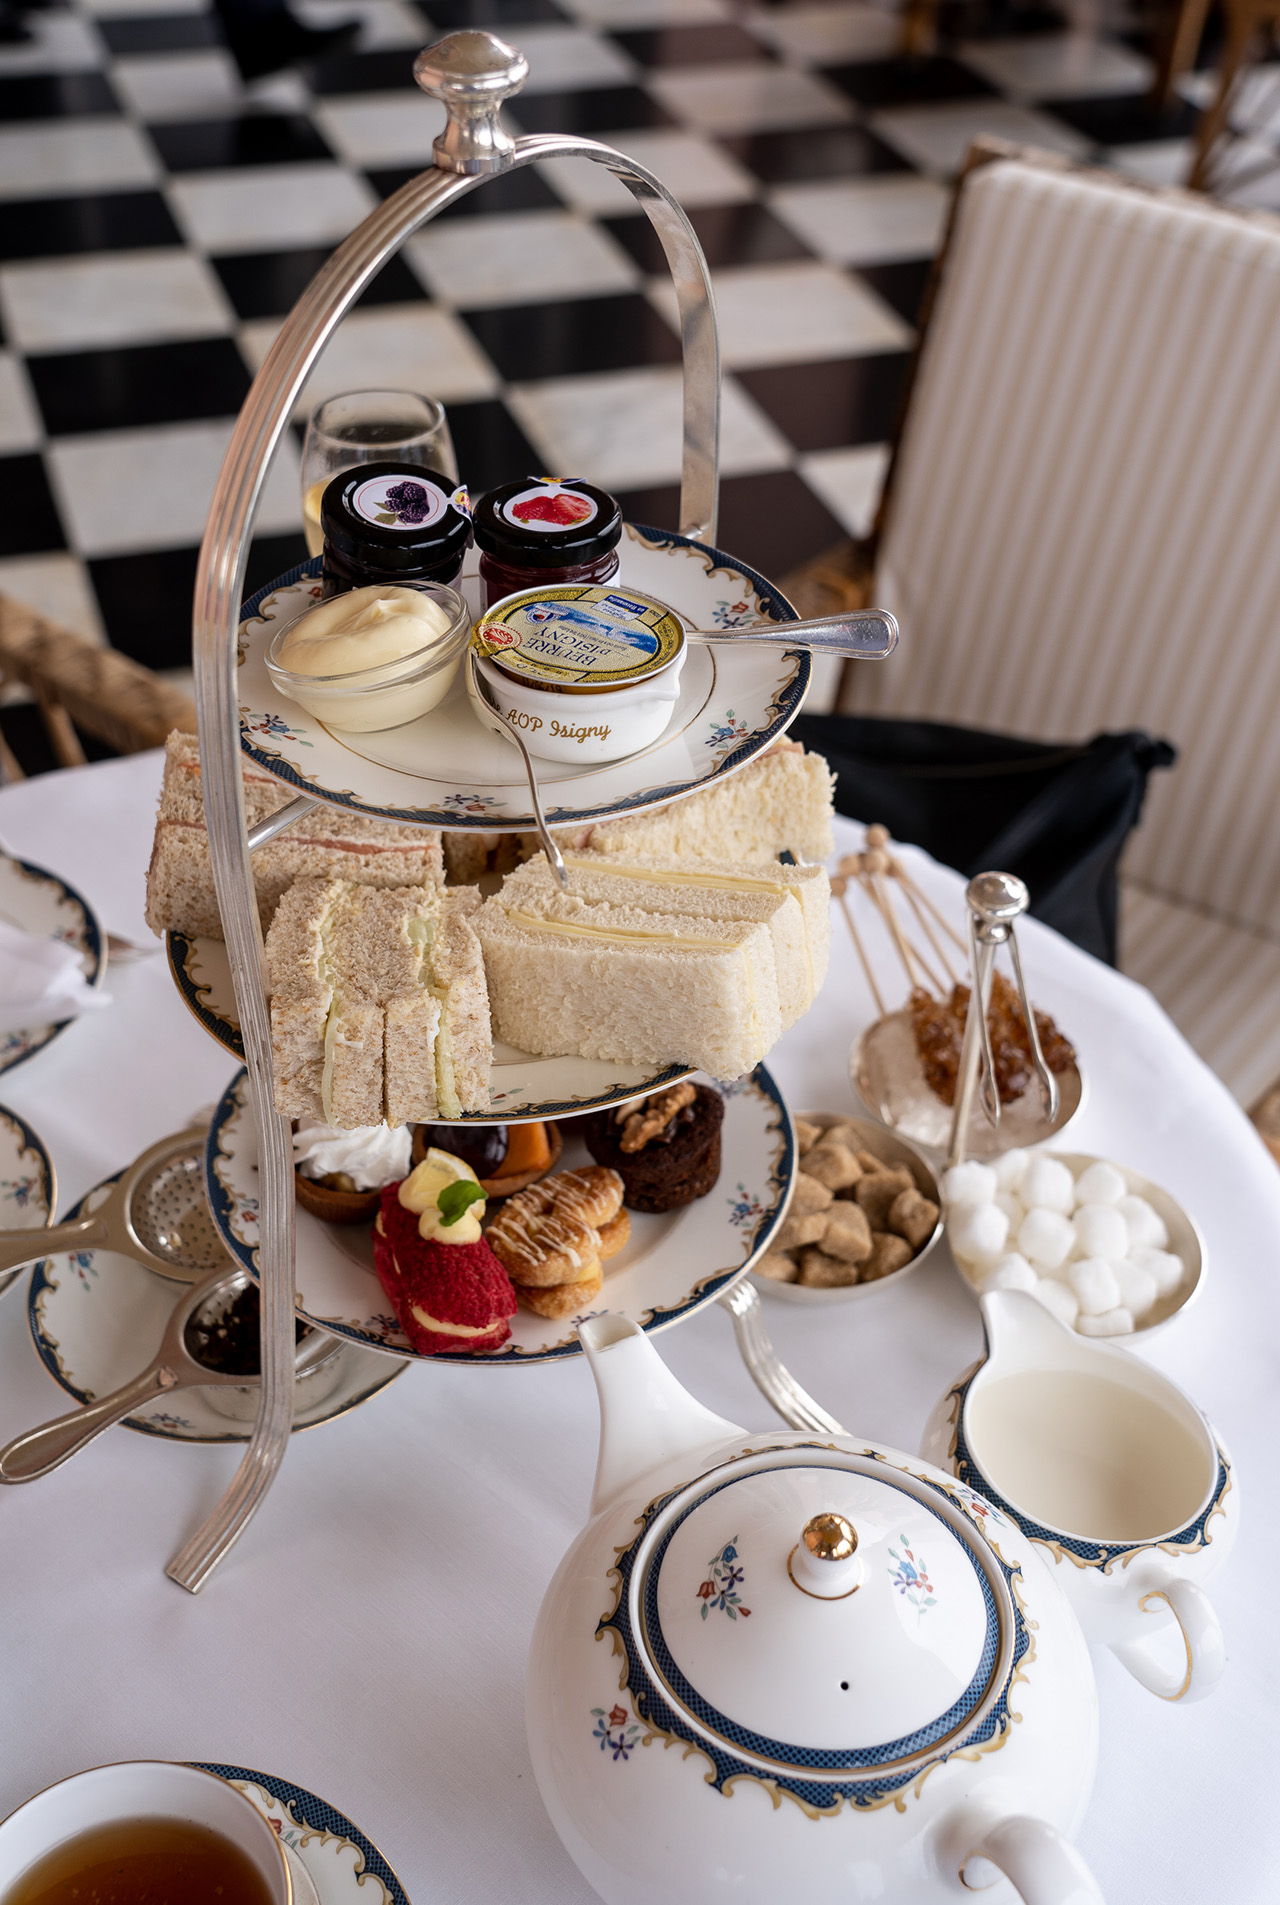 Triple tier presentation. Scones are served after you finish the sandwiches.